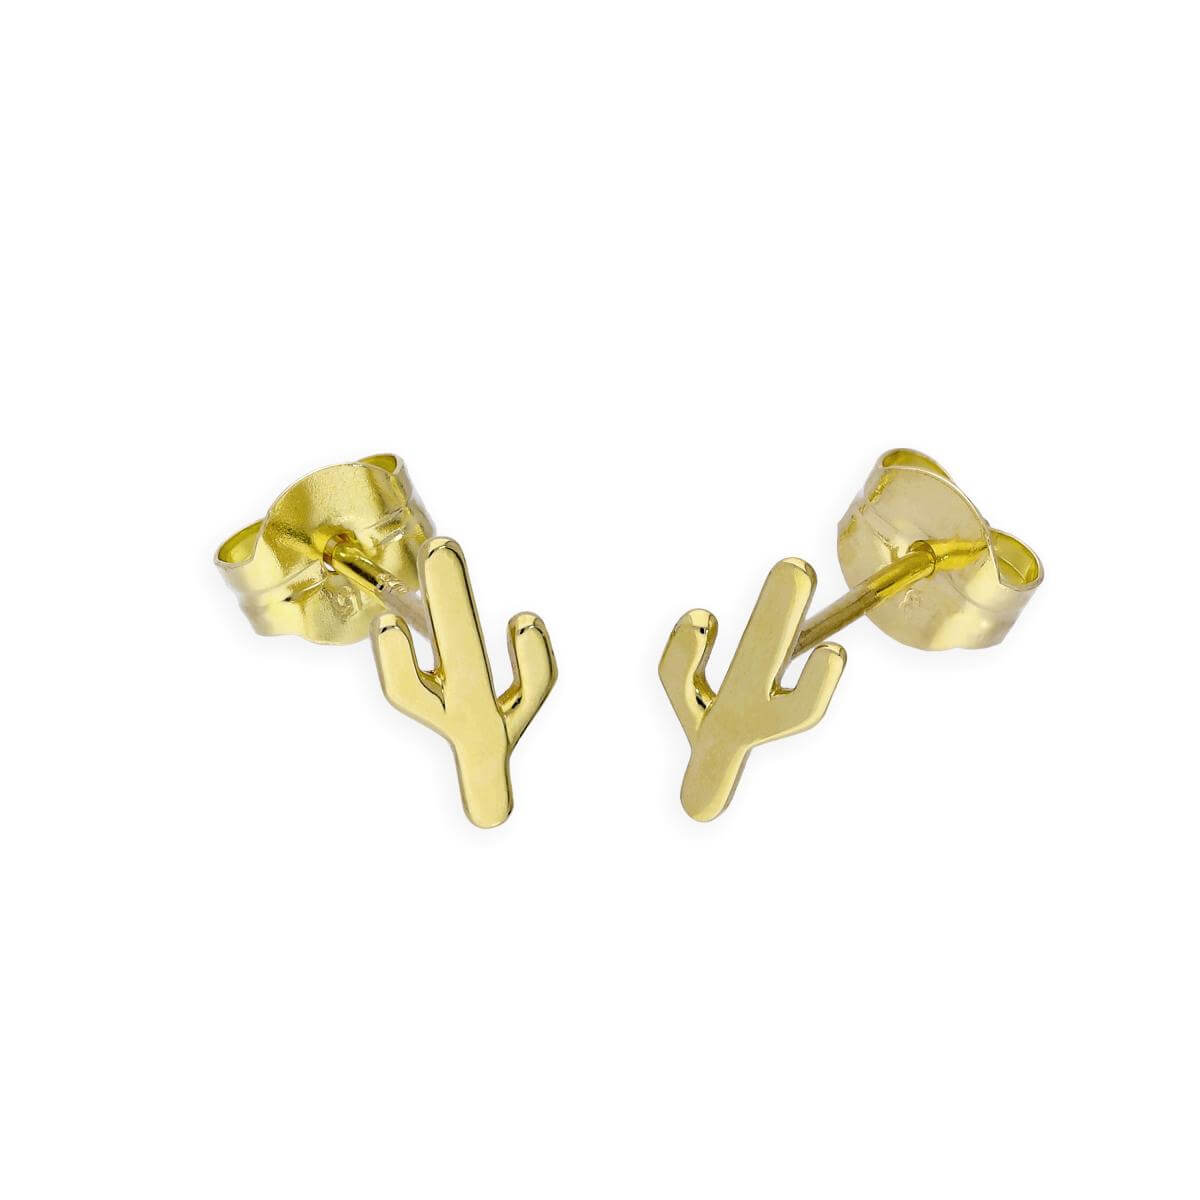 9ct Gold Cactus Stud Earrings